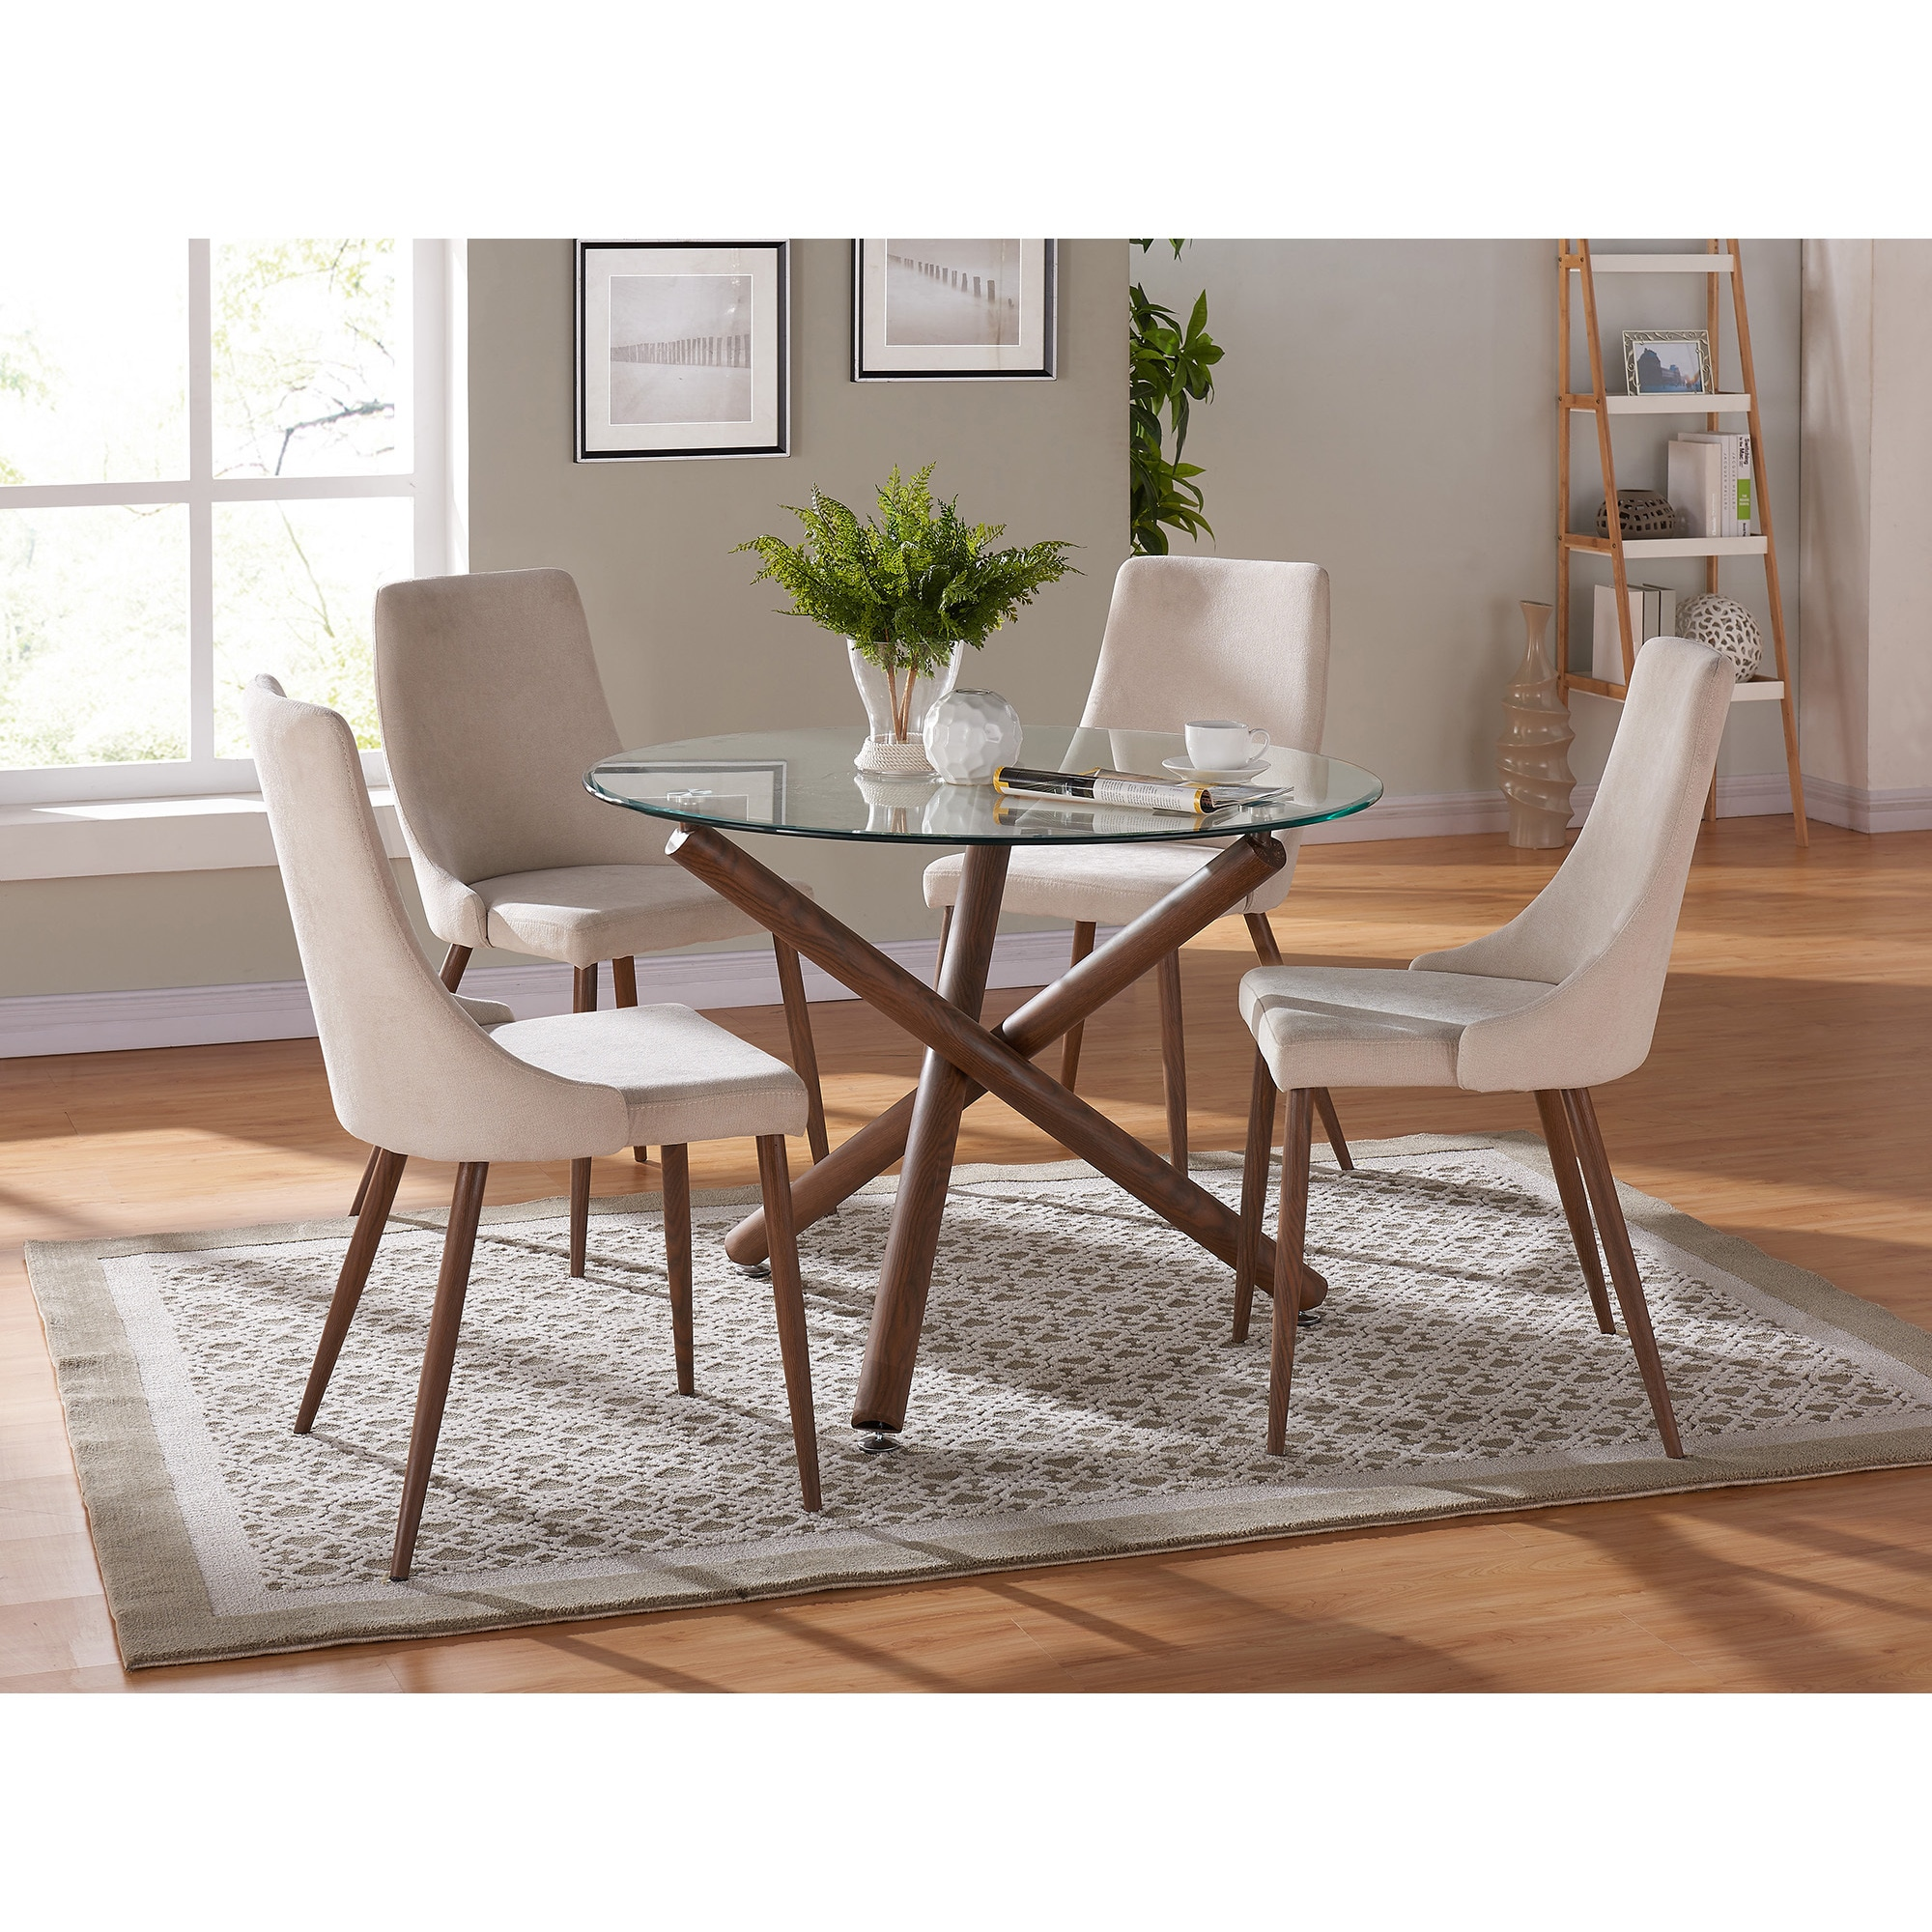 Shop carson carrington kaskinen dining chair set of 2 free shipping today overstock com 20370481